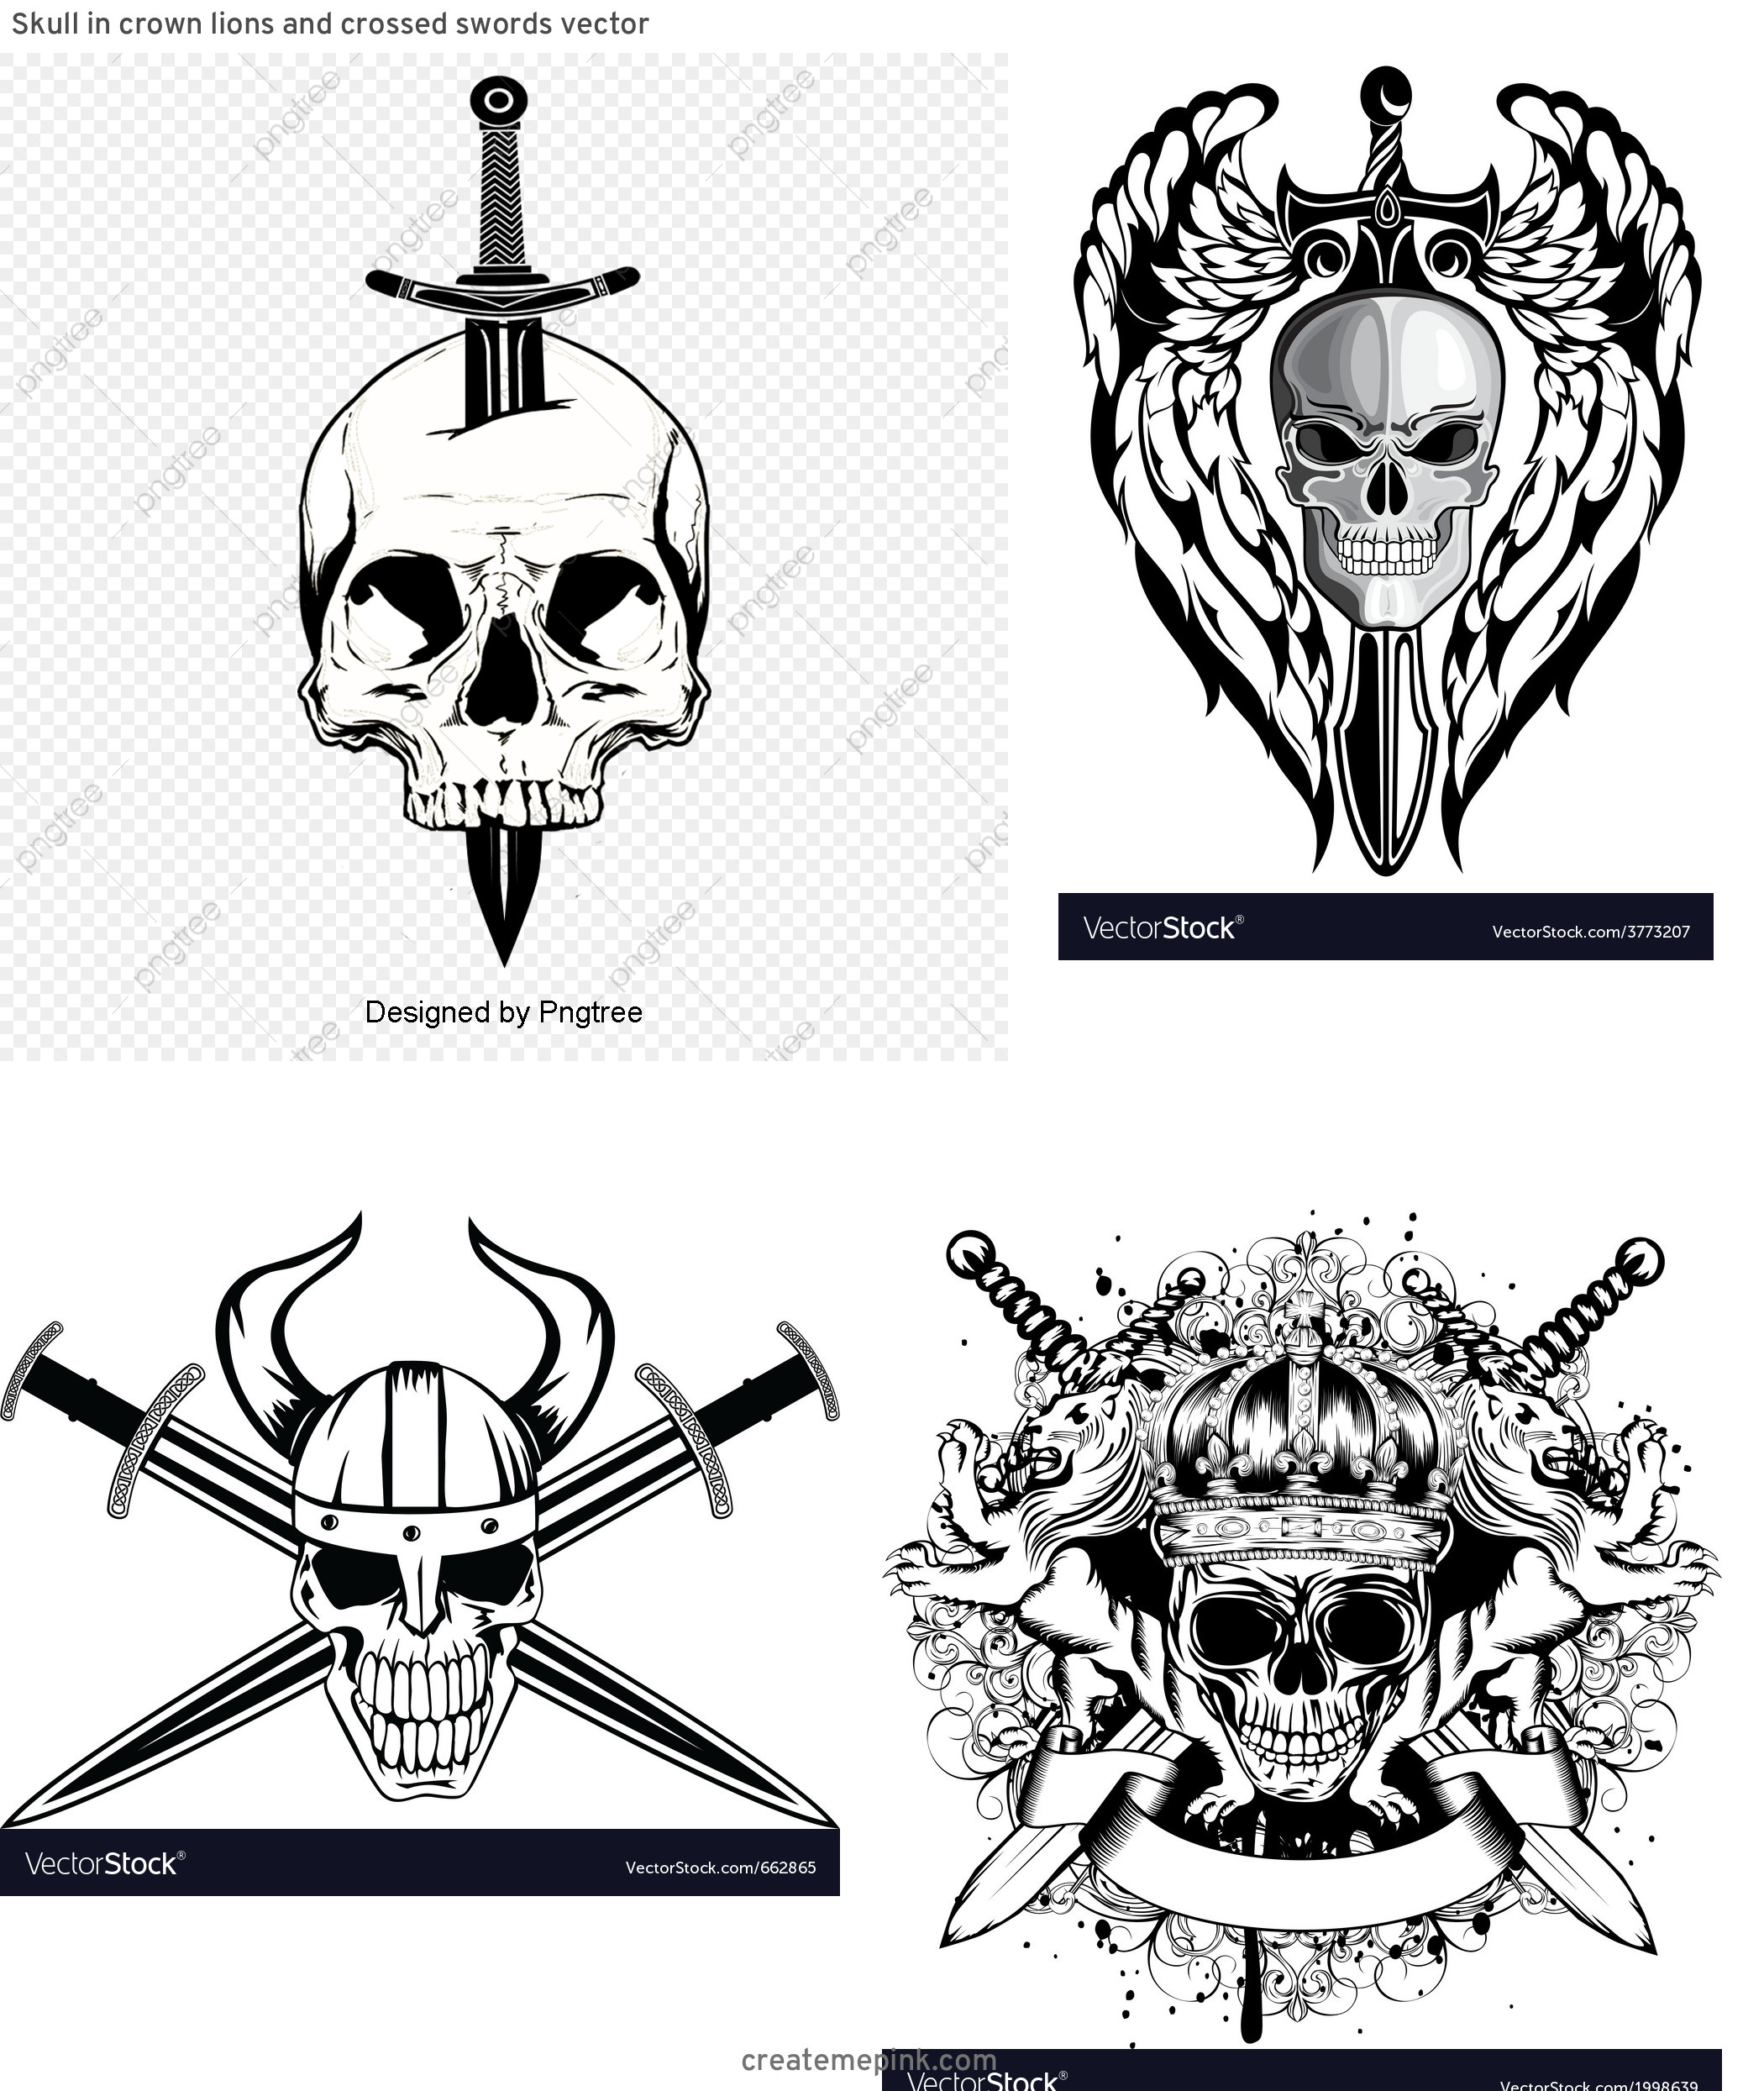 Skull Sword Vector: Skull In Crown Lions And Crossed Swords Vector